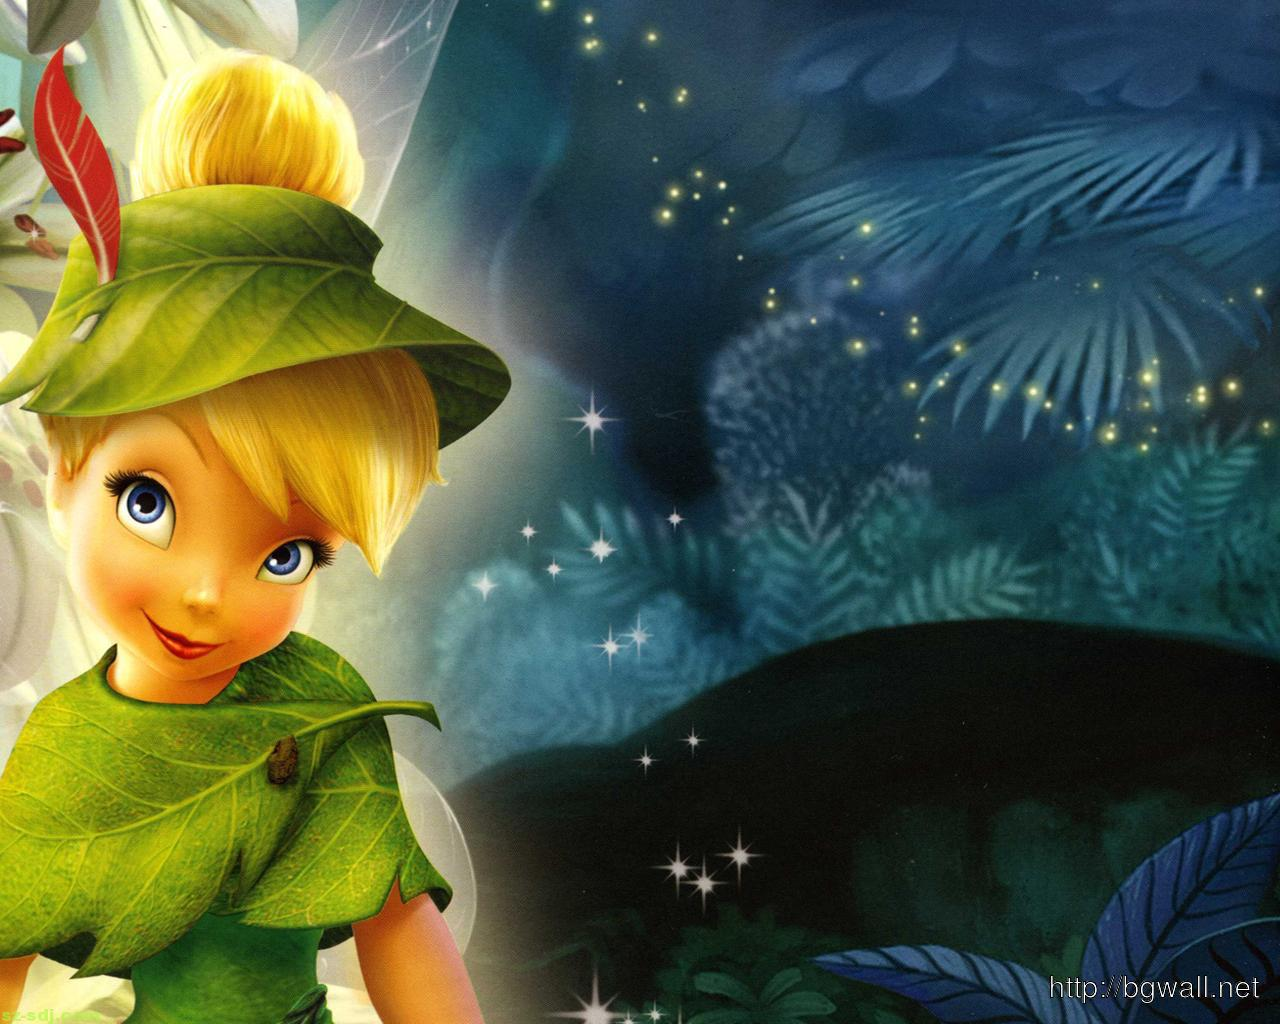 theme wallpaper tinker bell - photo #36